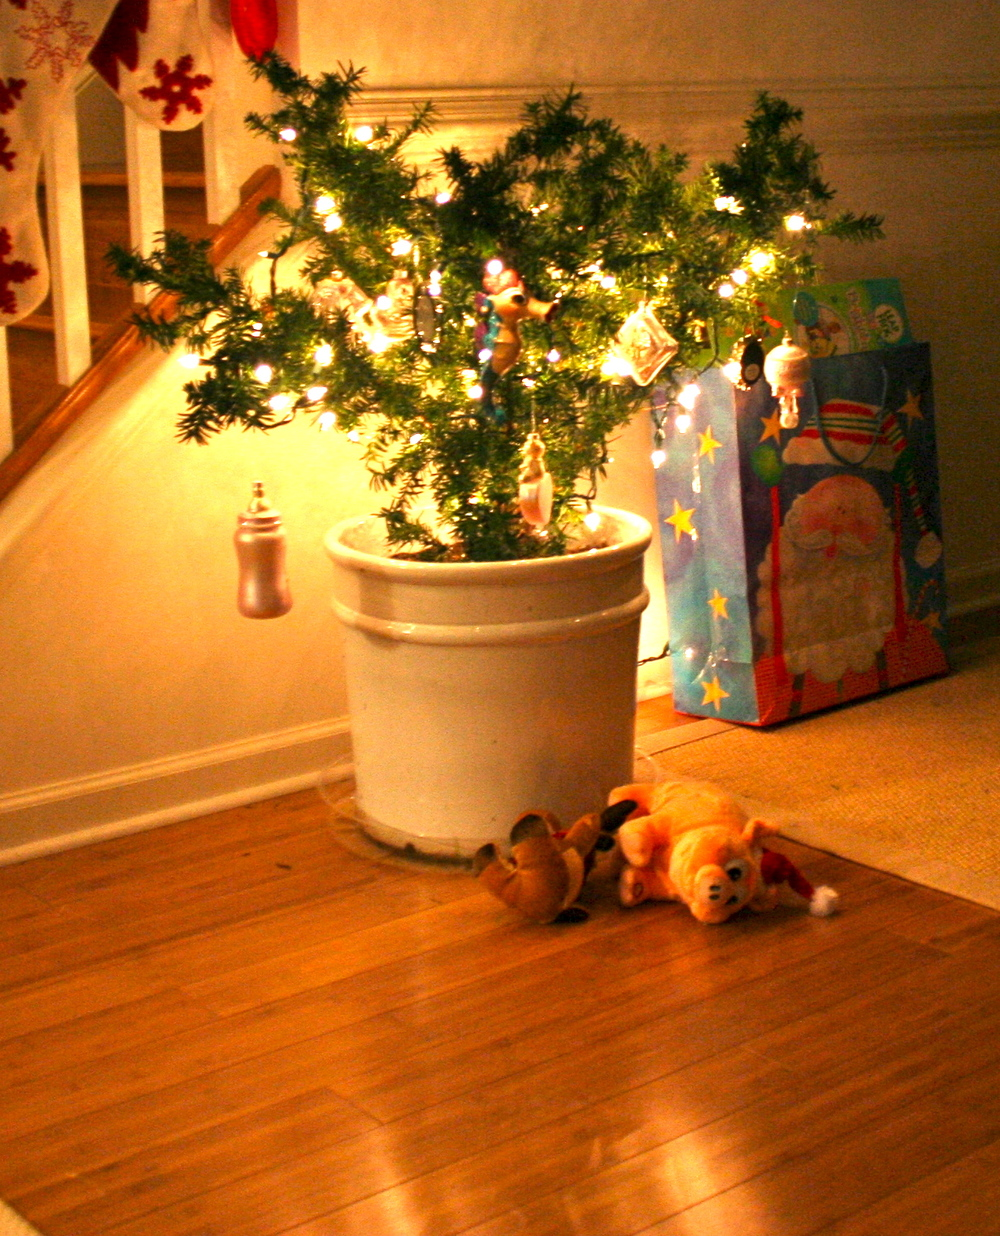 2006-2008 - We spent Christmas in Nebraska so our little evergreen served as our tree those years. This was Audrey's first tree.